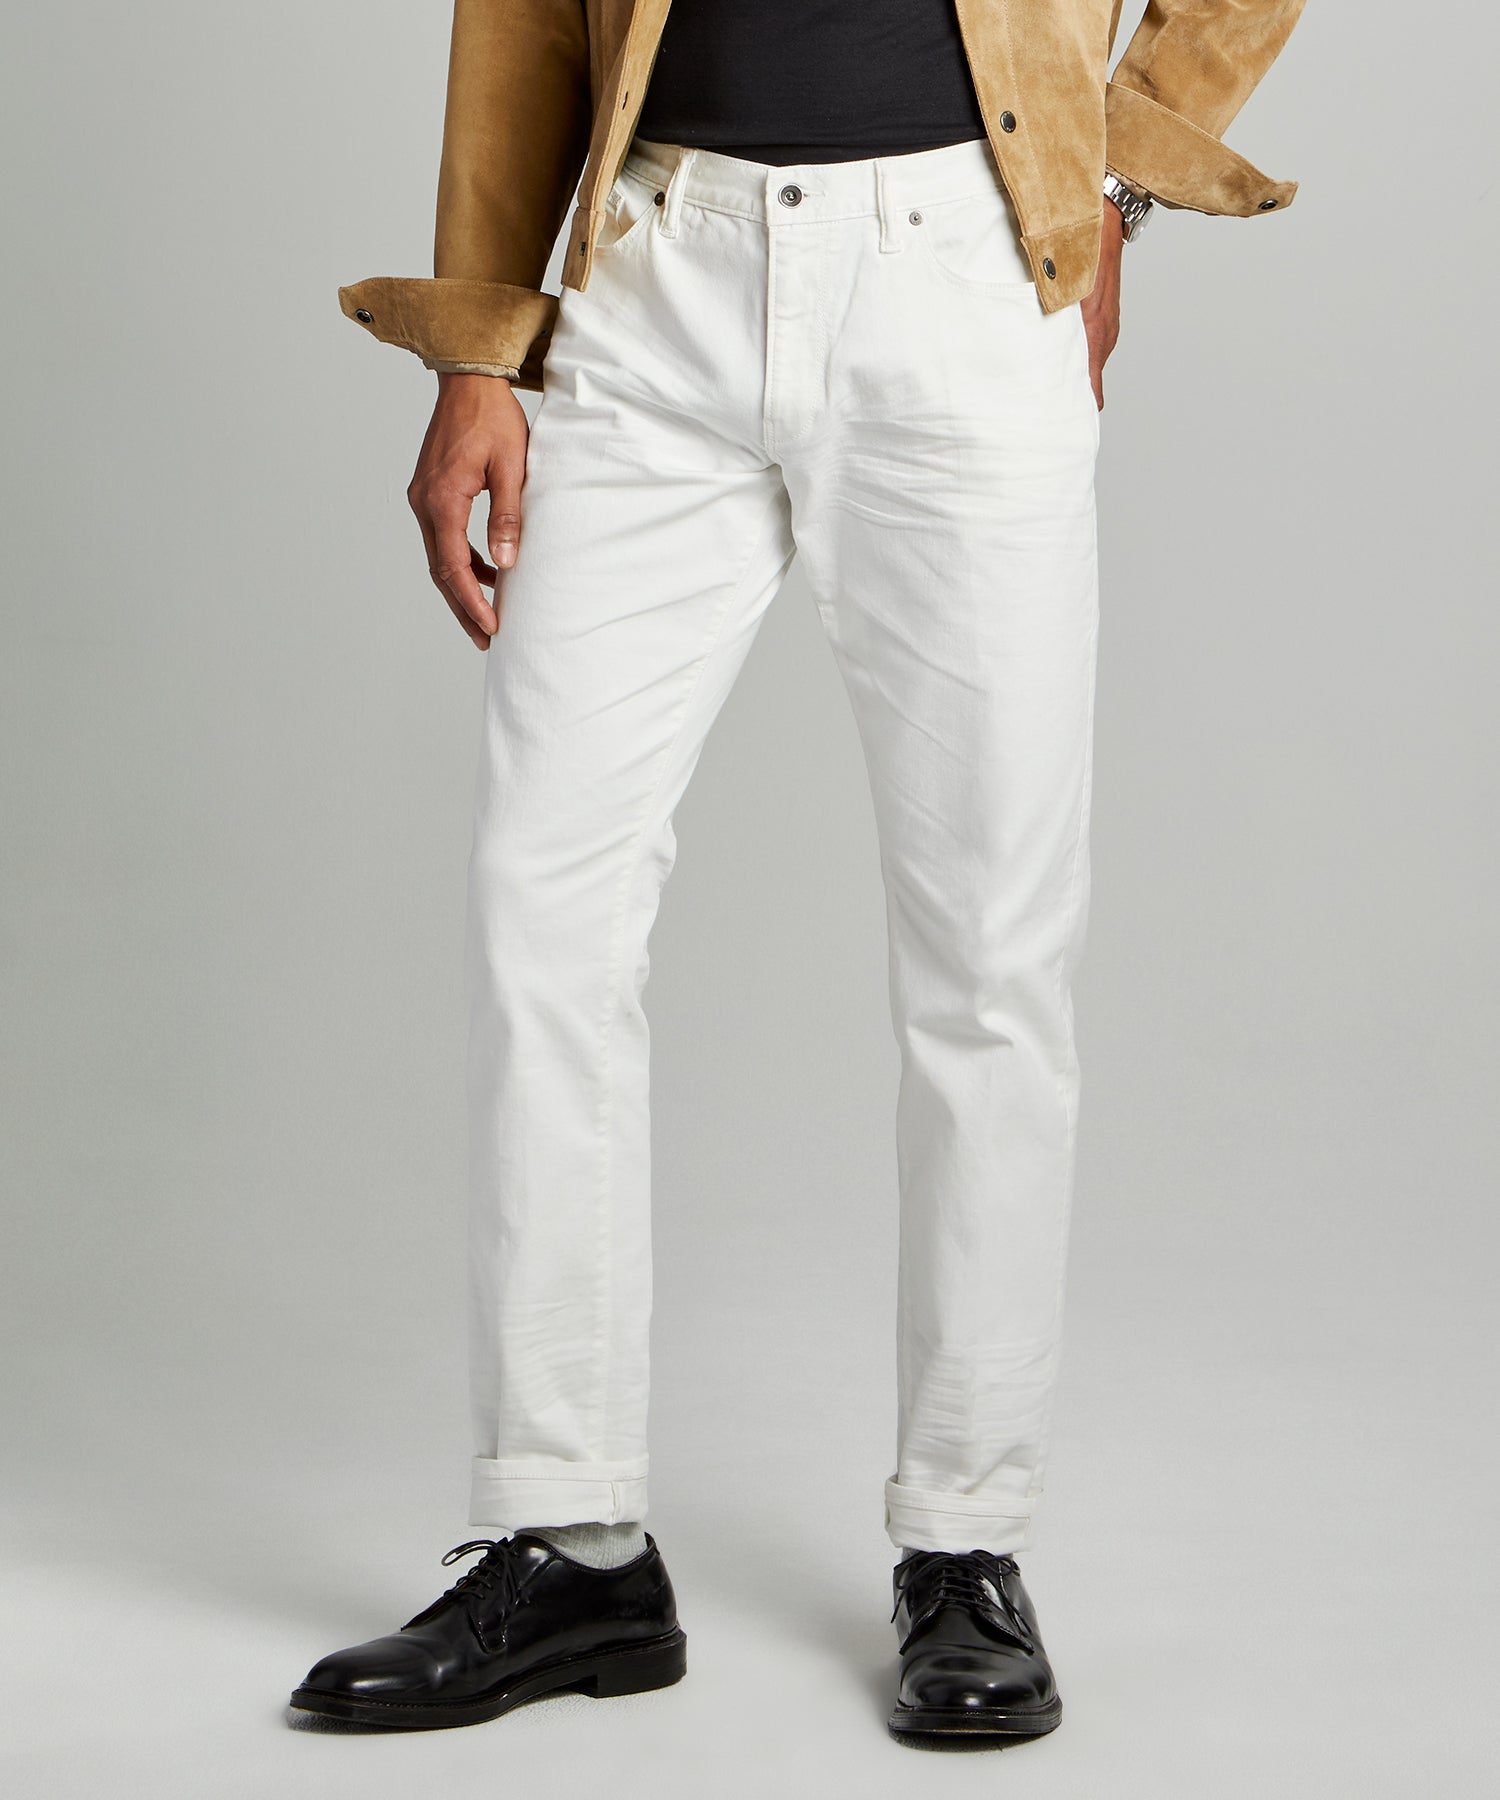 Slim Fit 5-Pocket Garment-Dyed Stretch Twill in White